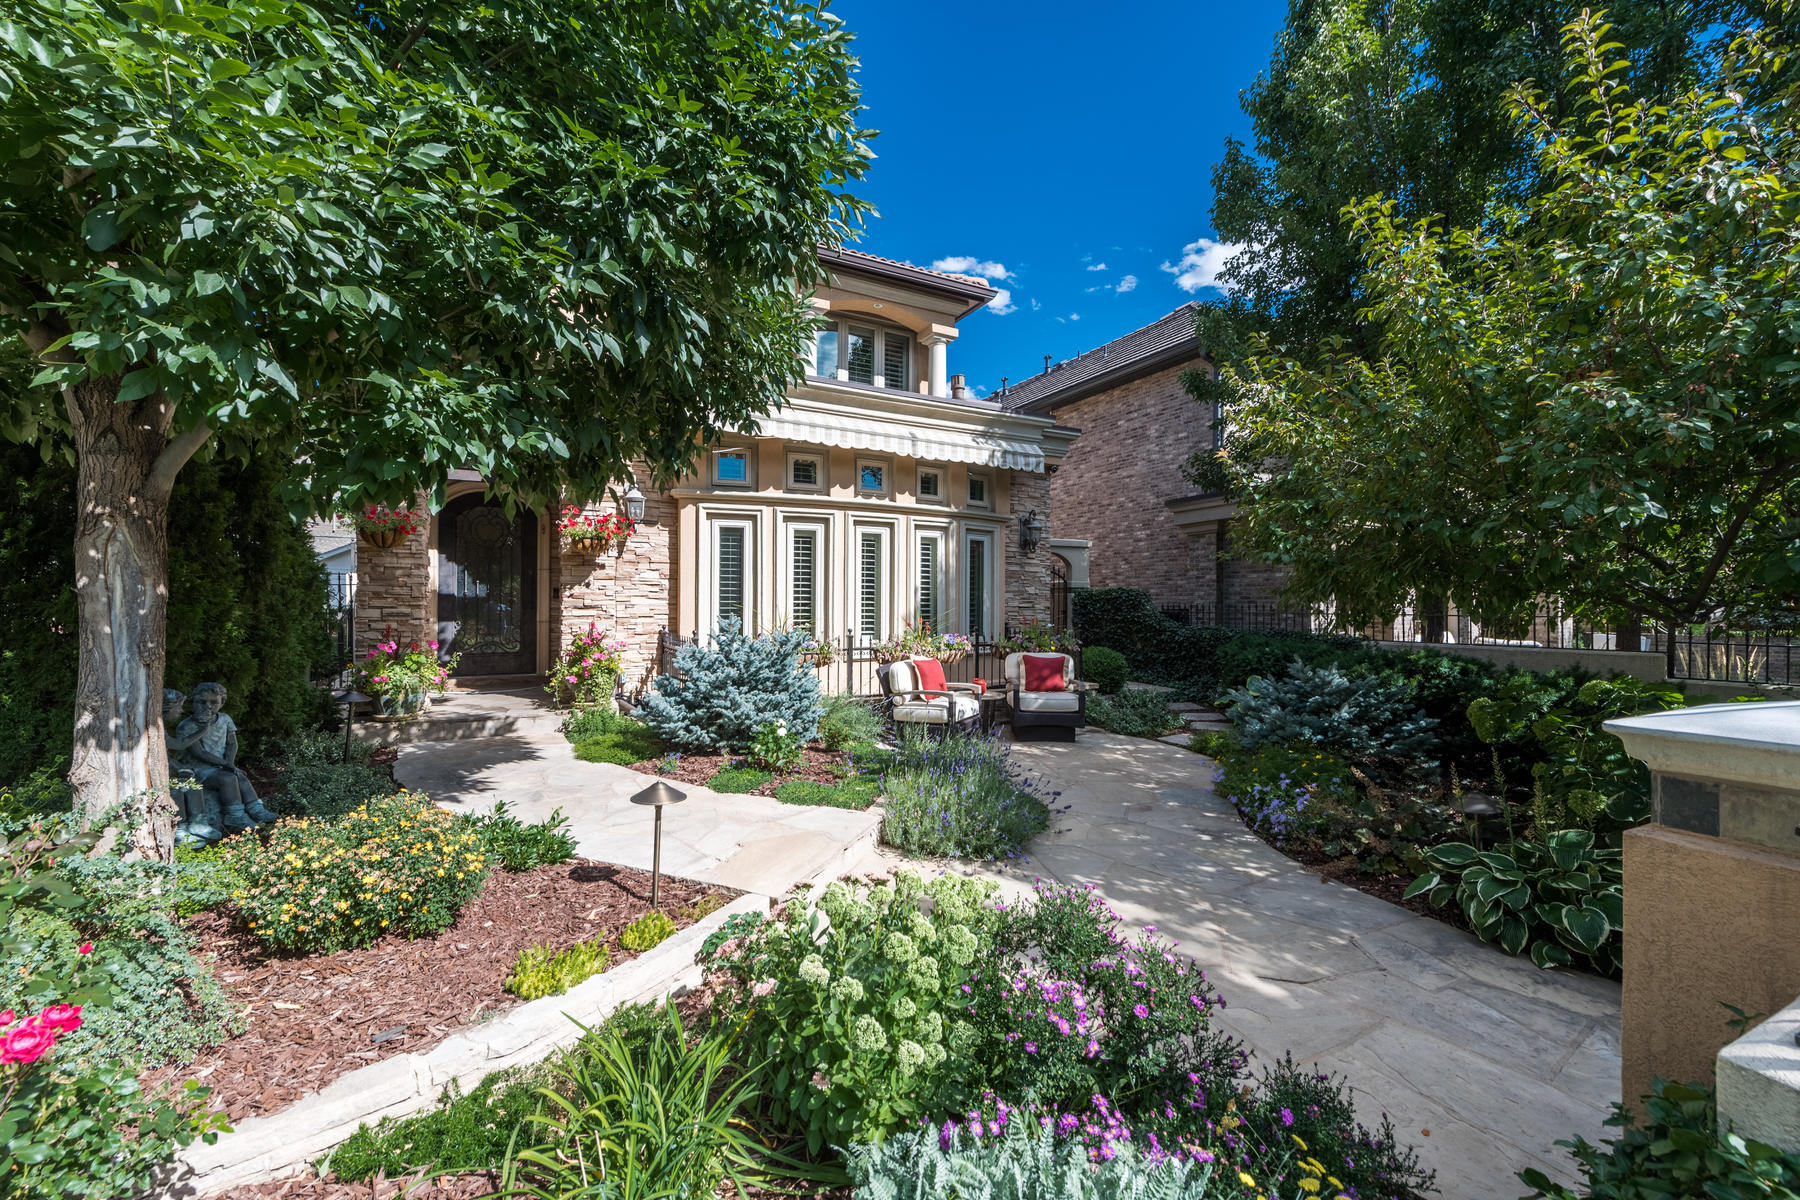 Additional photo for property listing at 464 Madison Street 464 Madison Street Denver, Colorado 80206 United States